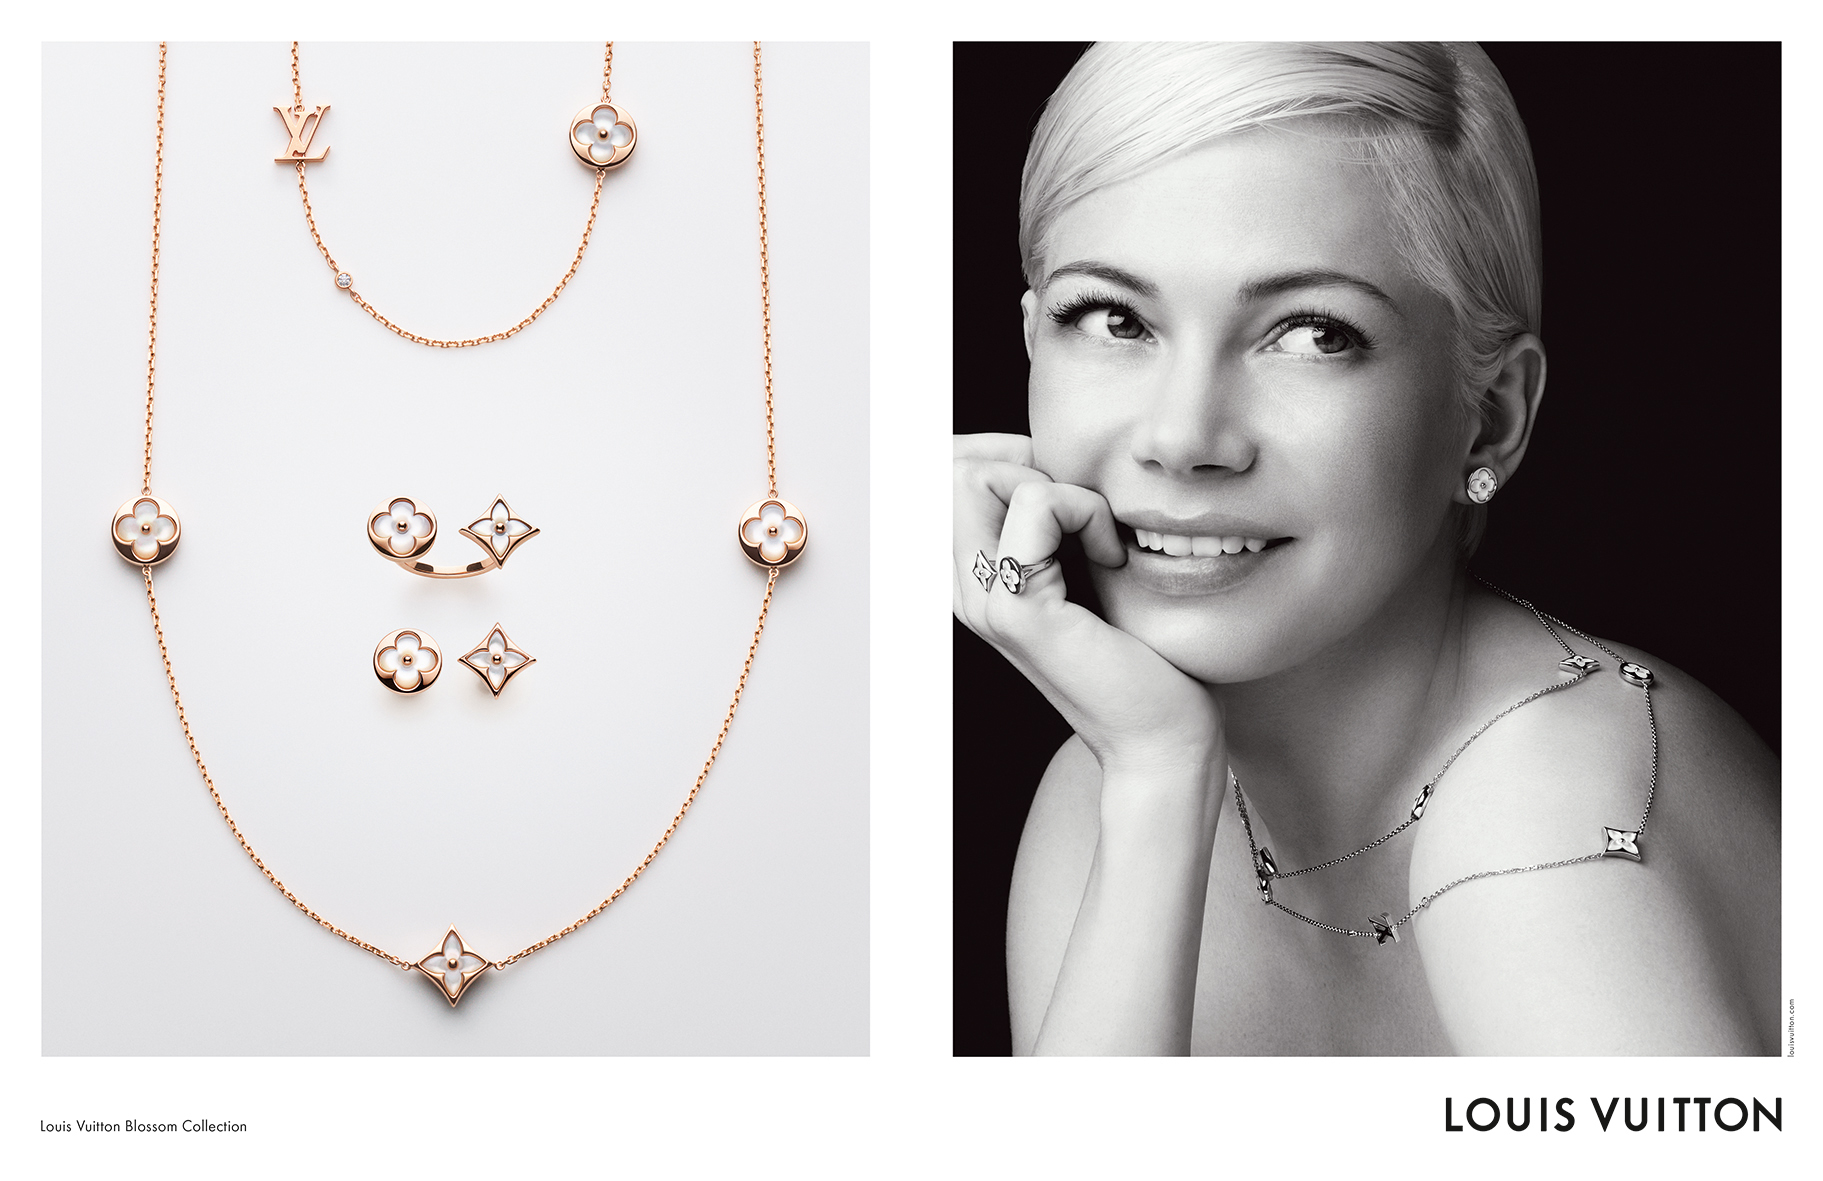 Michelle Williams debuts in Louis Vuitton's new Color Blossom BB jewelry collection ads.